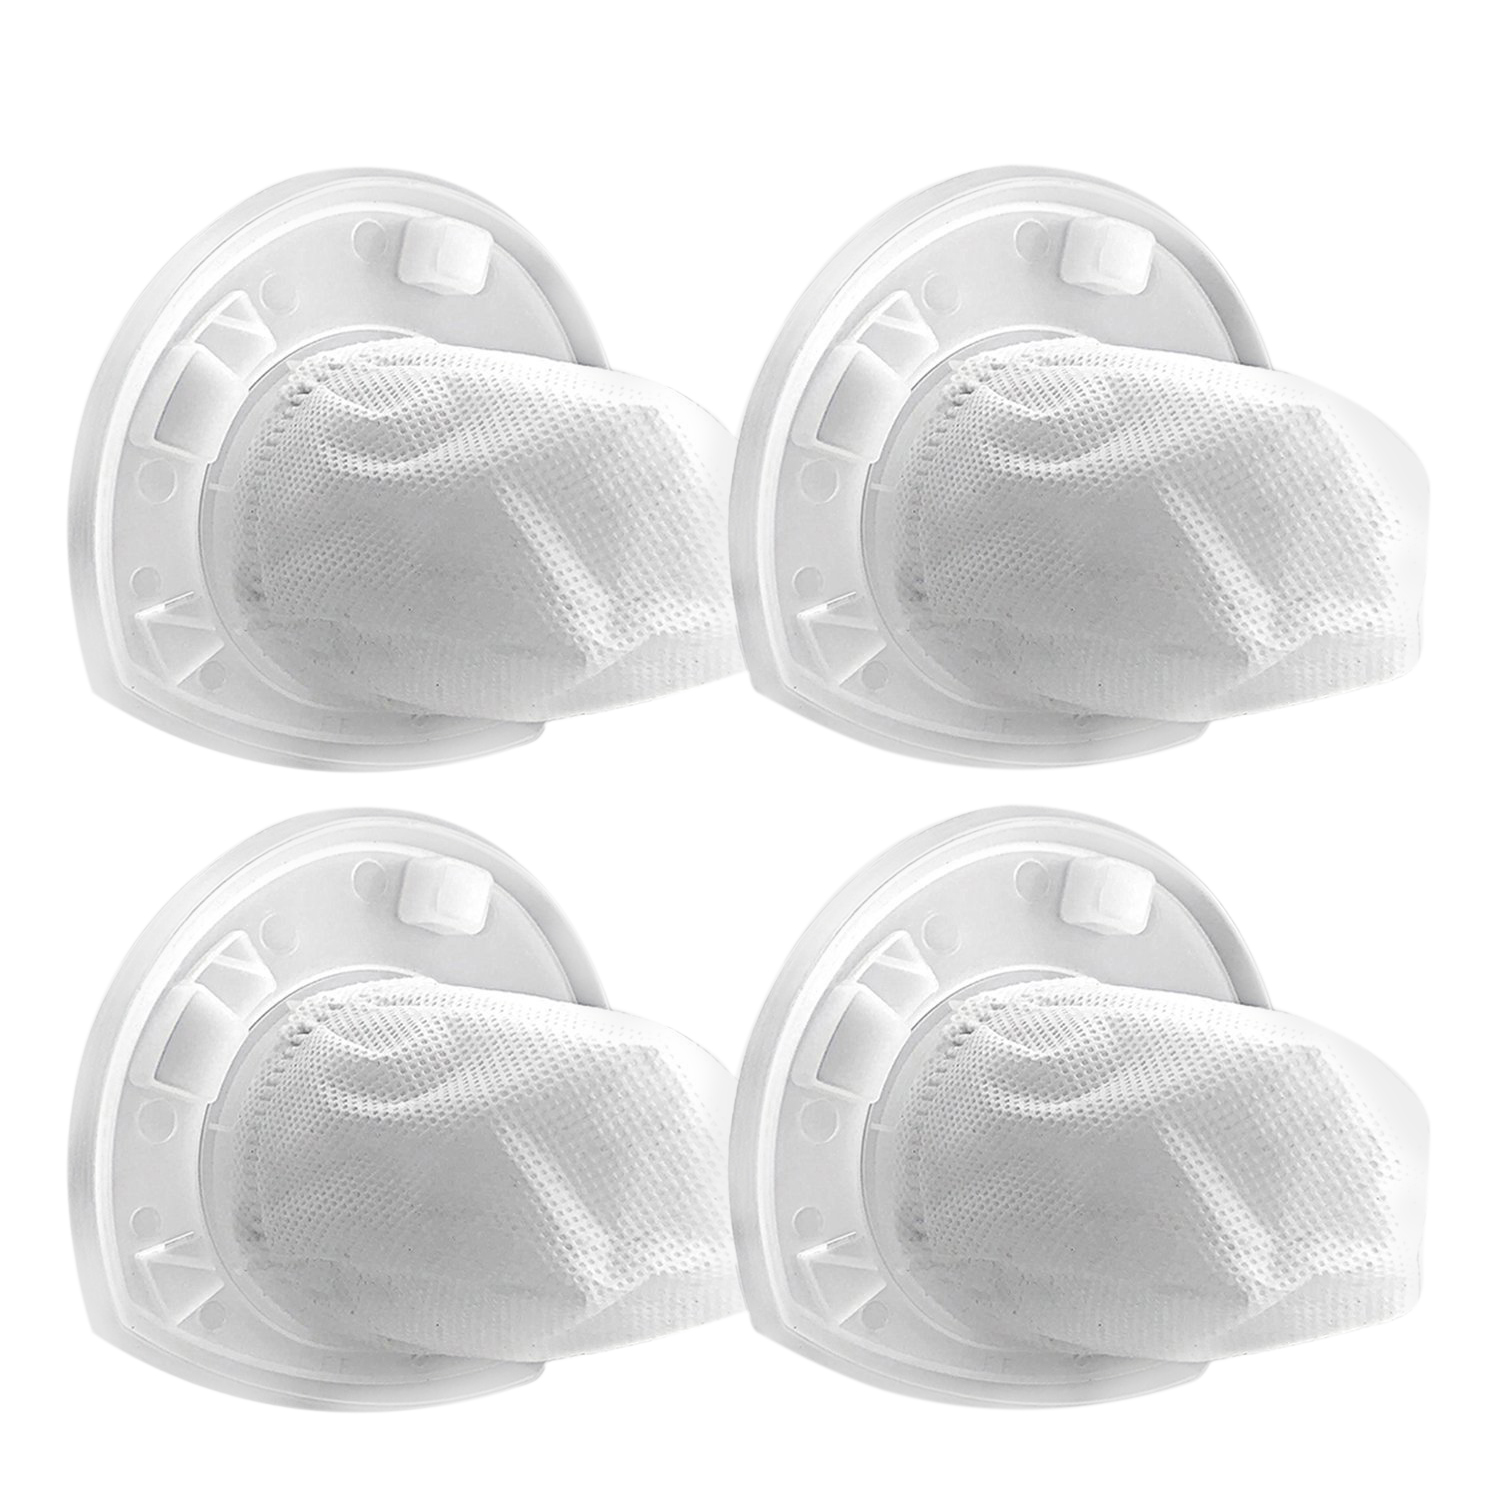 5 Pack Replacement Filter for Black /& Decker VF110 Dustbuster,Replaces Part # VF110 90558113-01